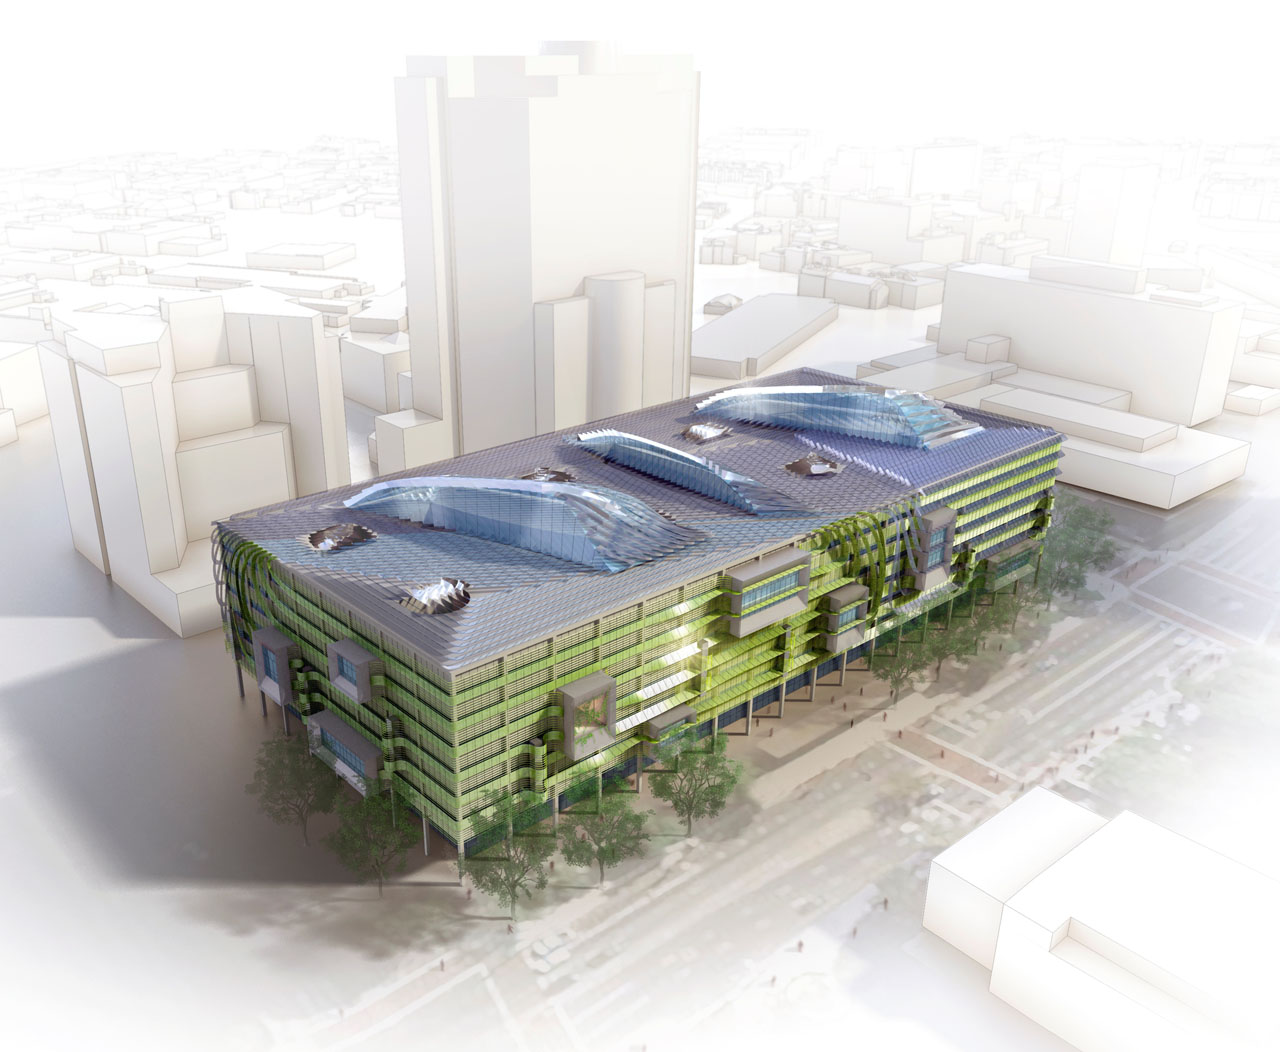 Aerial rendering of the Process Zero Concept Building by HOK